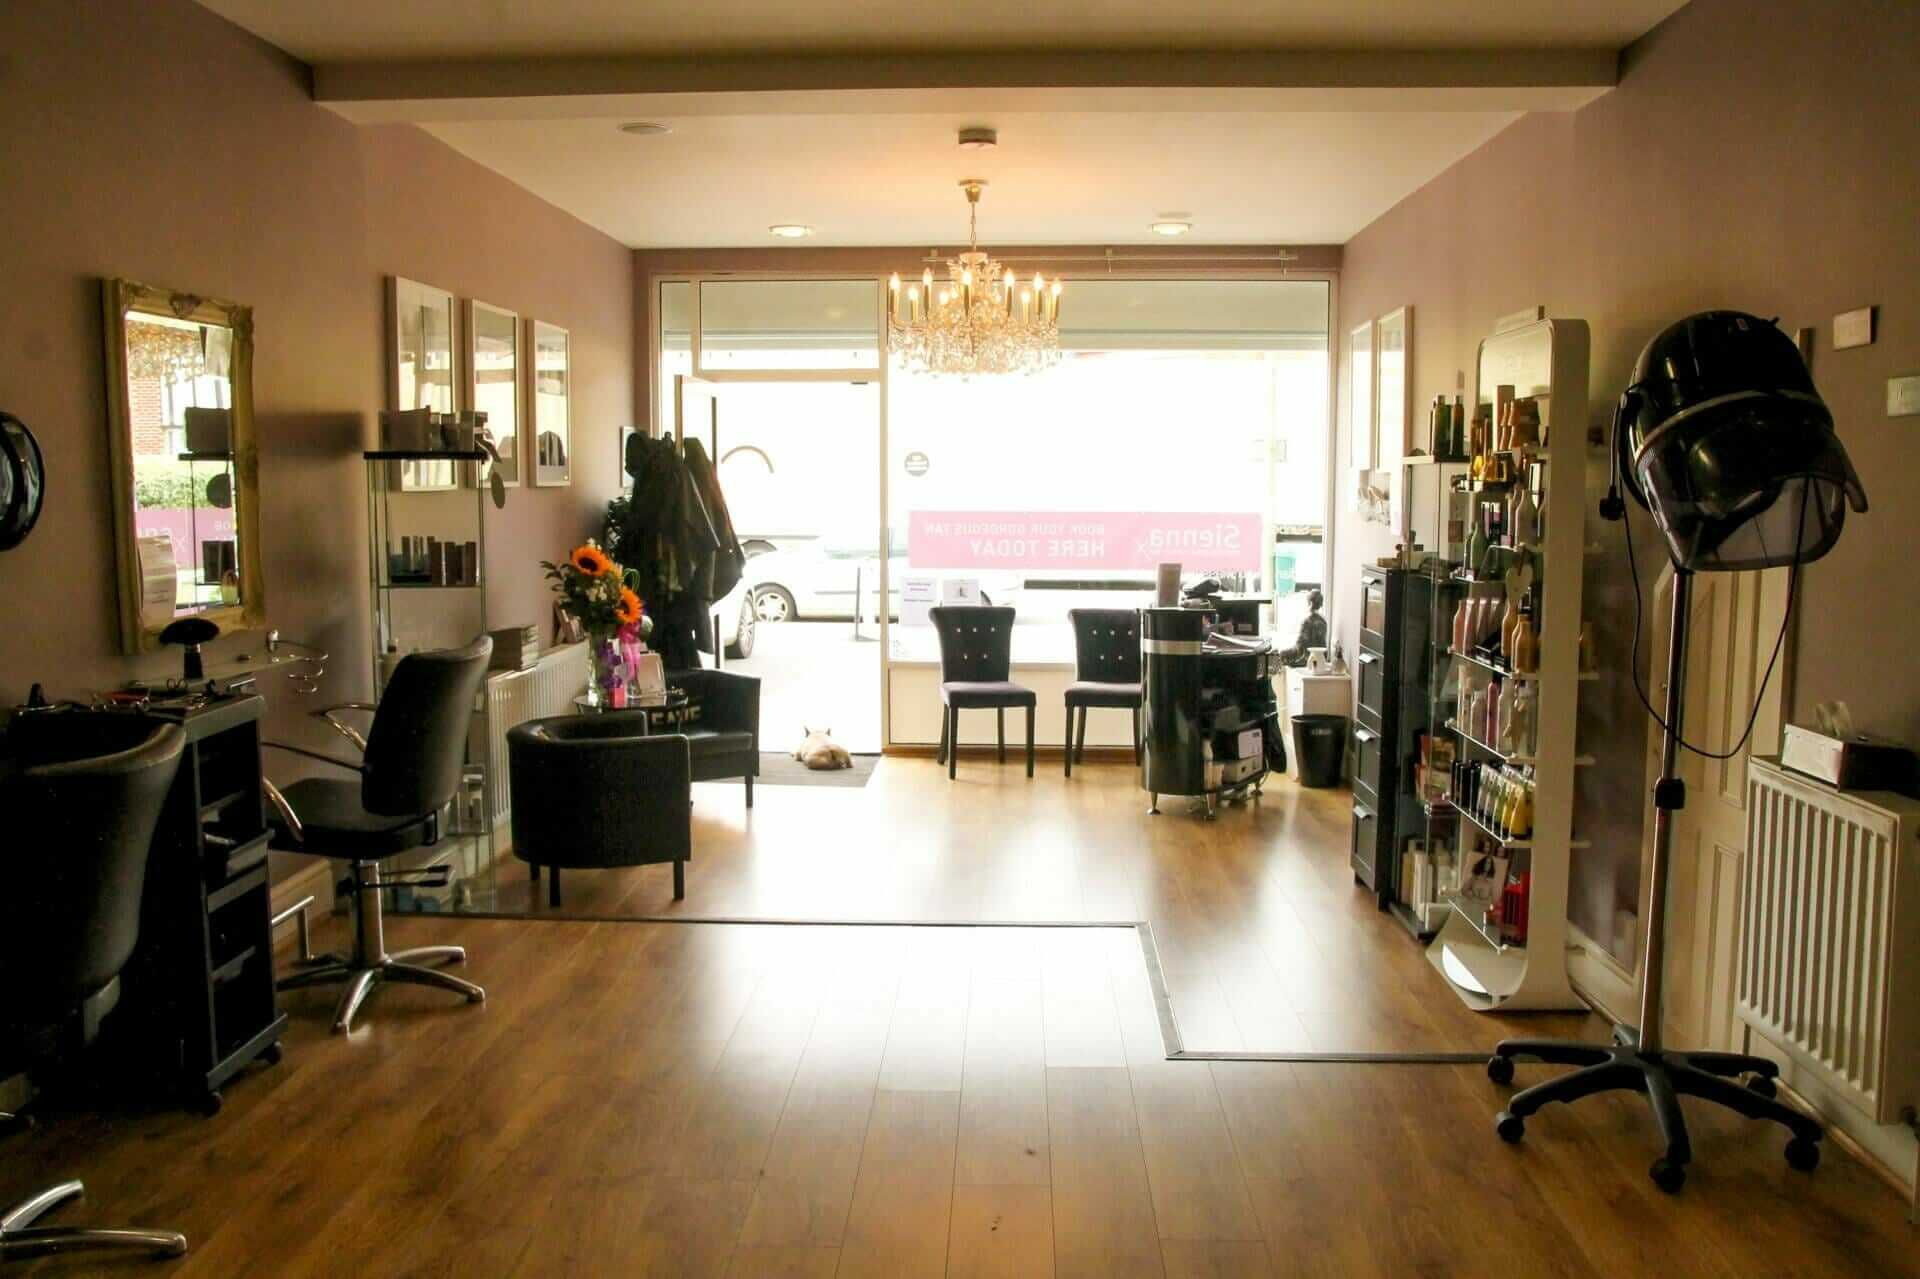 internal-view-of-serenity-hair-and-beauty-salon